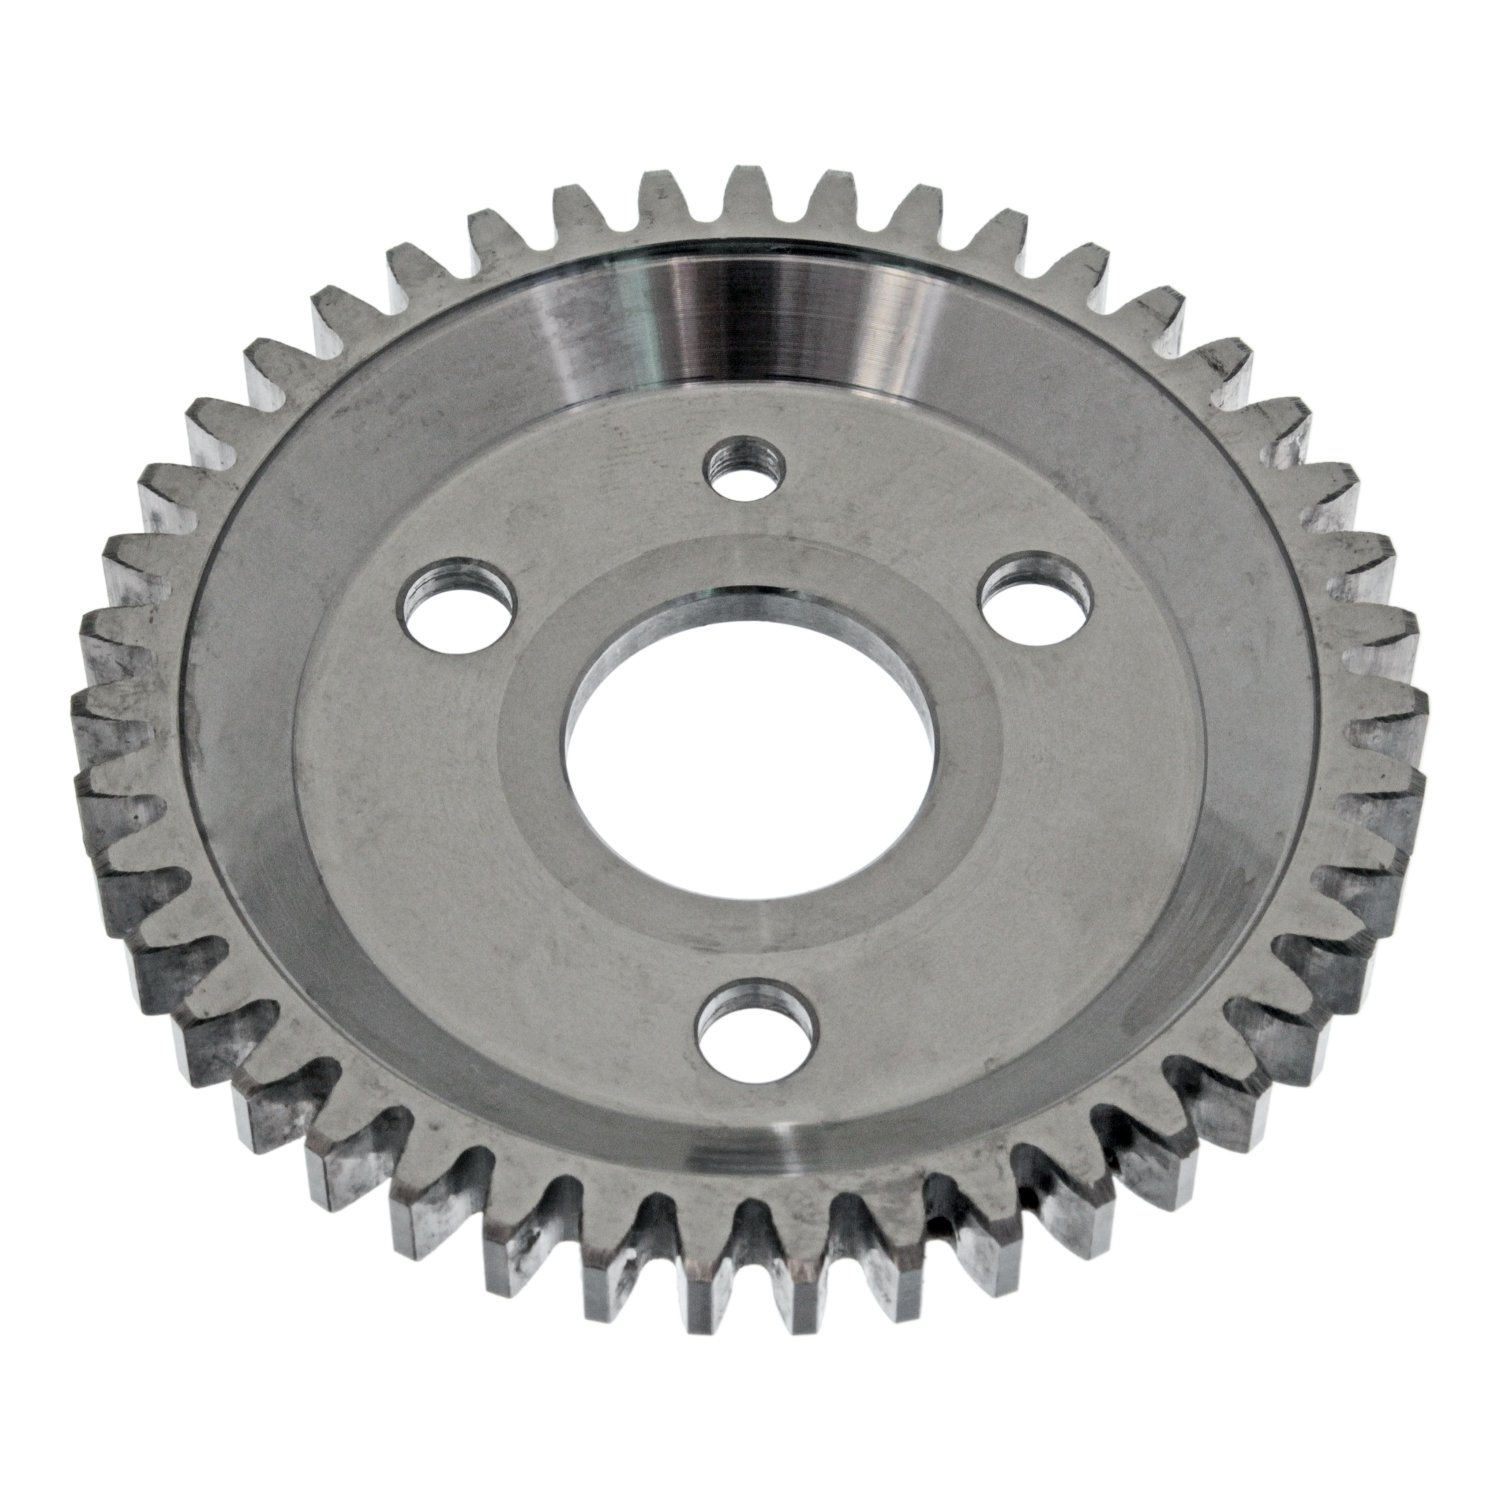 febi bilstein 19076 Camshaft Timing Gear for cylinder gear drive pack of one